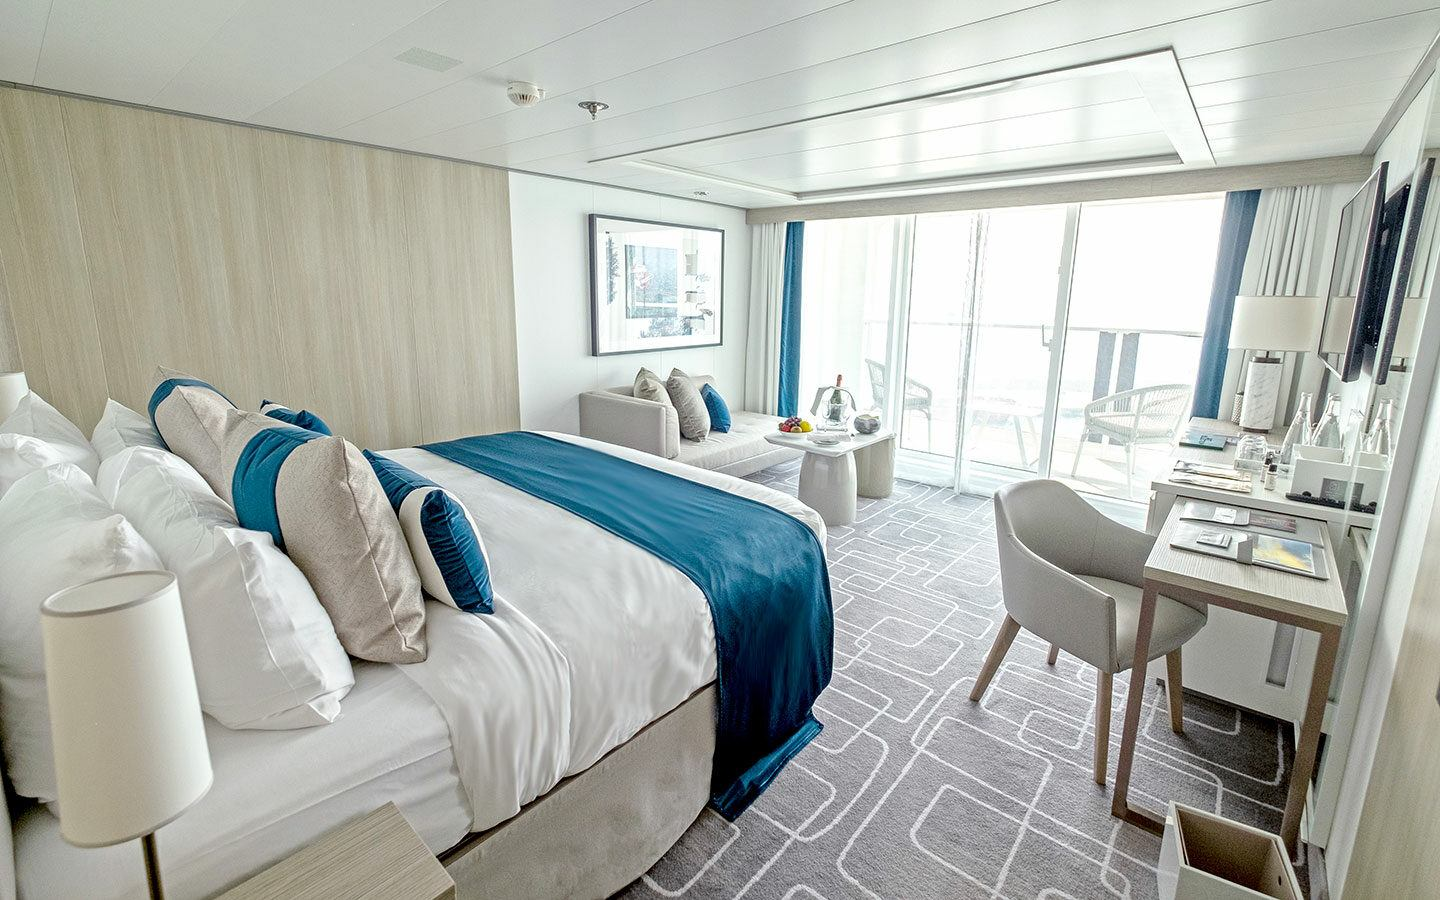 Our Sky Suite stateroom on Celebrity Apex